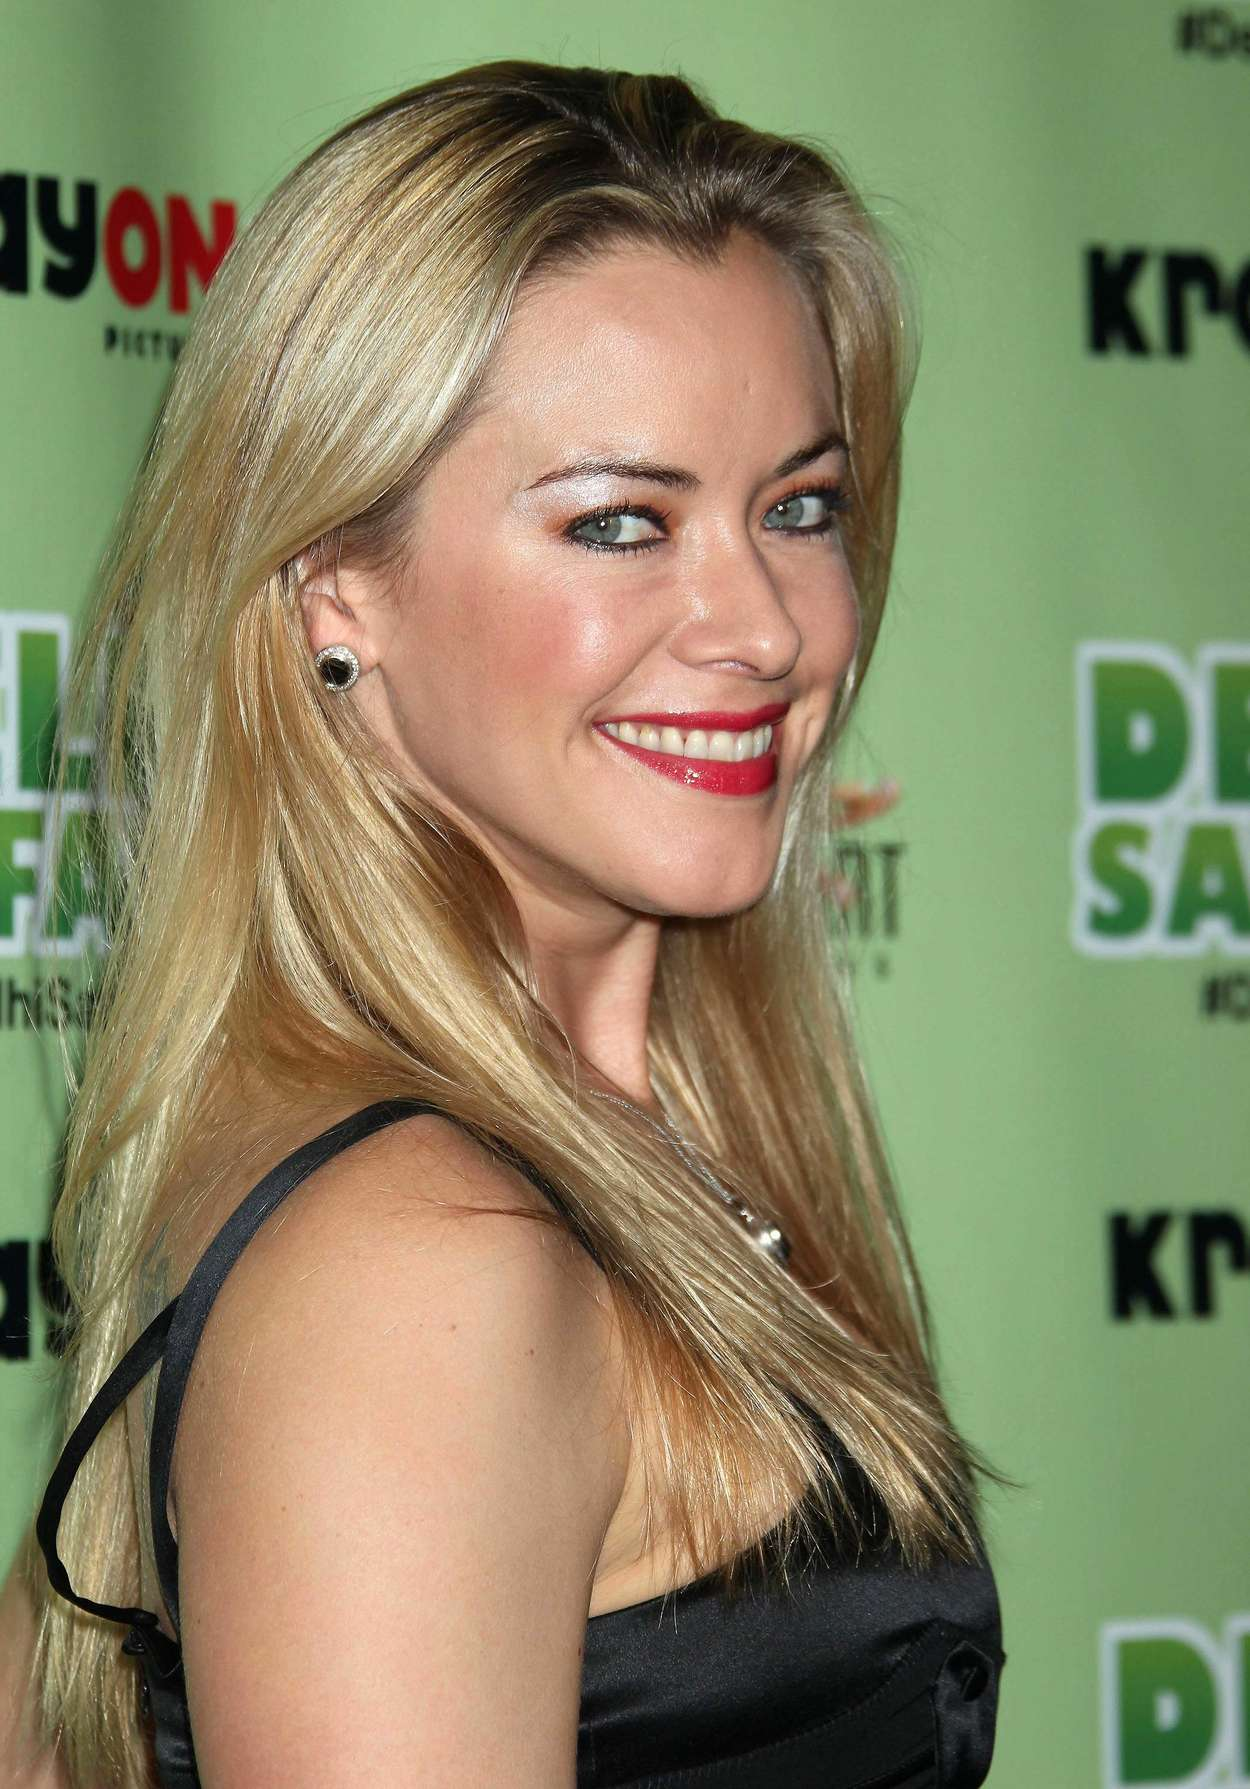 Kristanna Loken Delhi Safari Premiere in Los Angeles